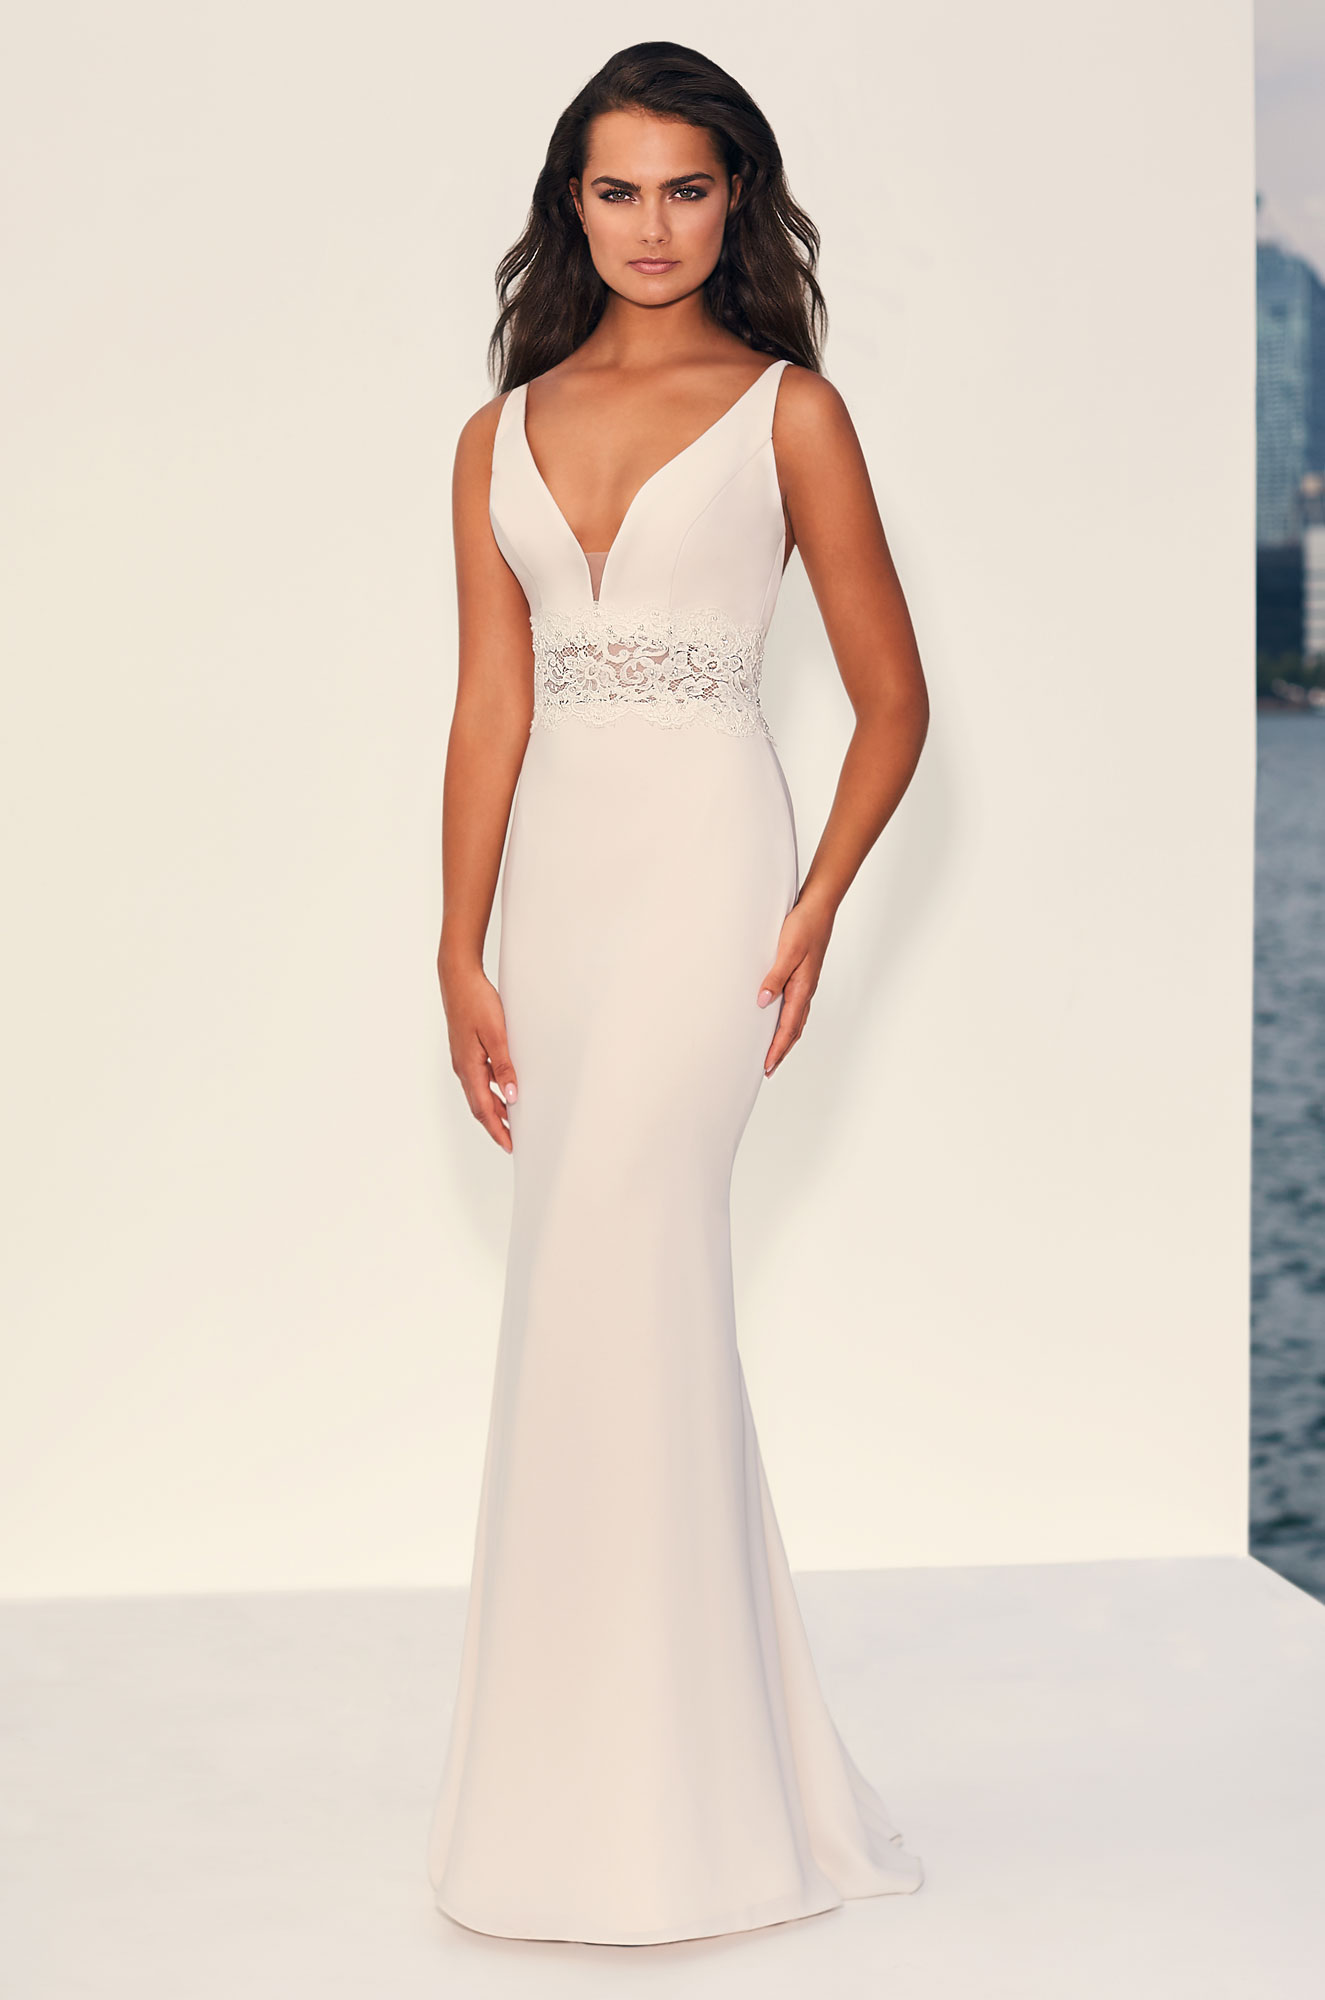 Beaded Lace Midriff Satin Wedding Dress - Style #4837